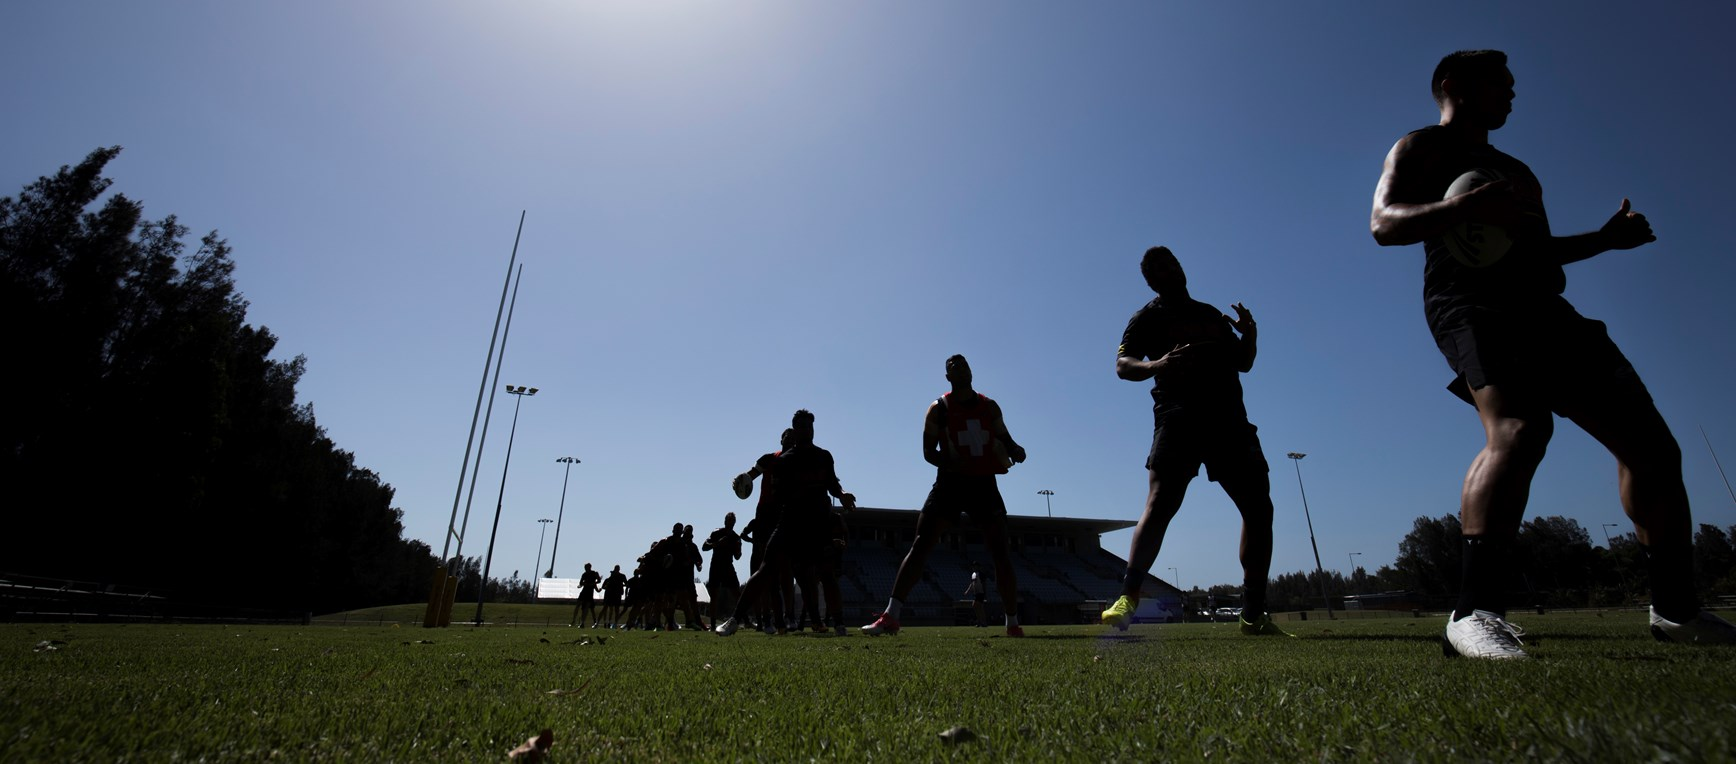 Gallery: Training in Port Macquarie